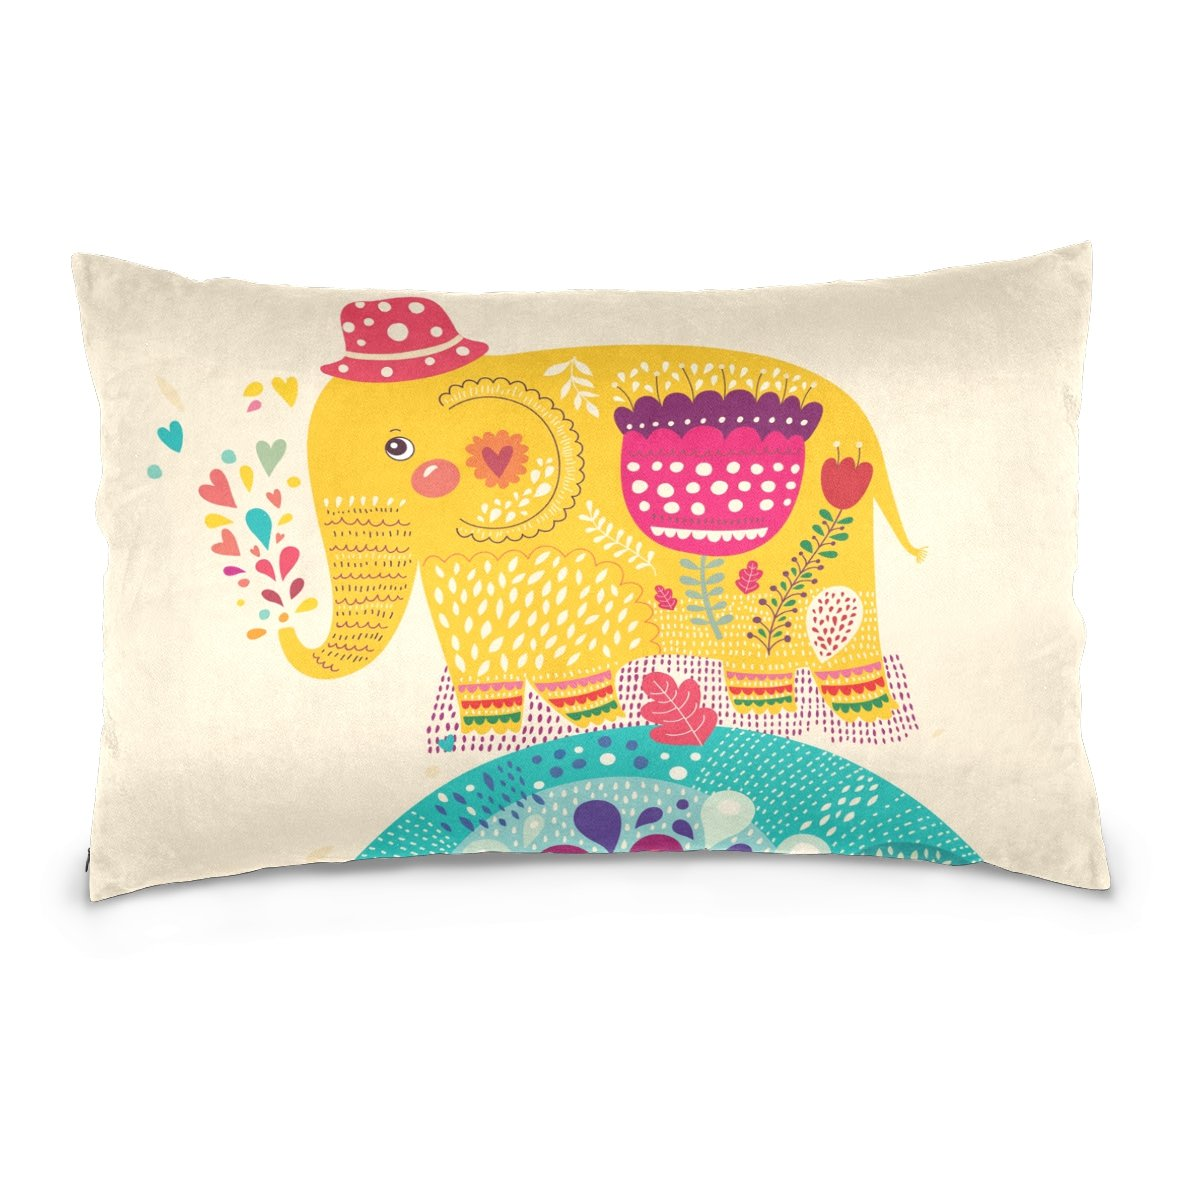 Pillow Covers Pillow Protectors Bed Bug Dust Mite Resistant Standard Pillow Cases Cotton Sateen Allergy Proof Soft Quality Covers with National Animal Elephant Pattern for Bedding